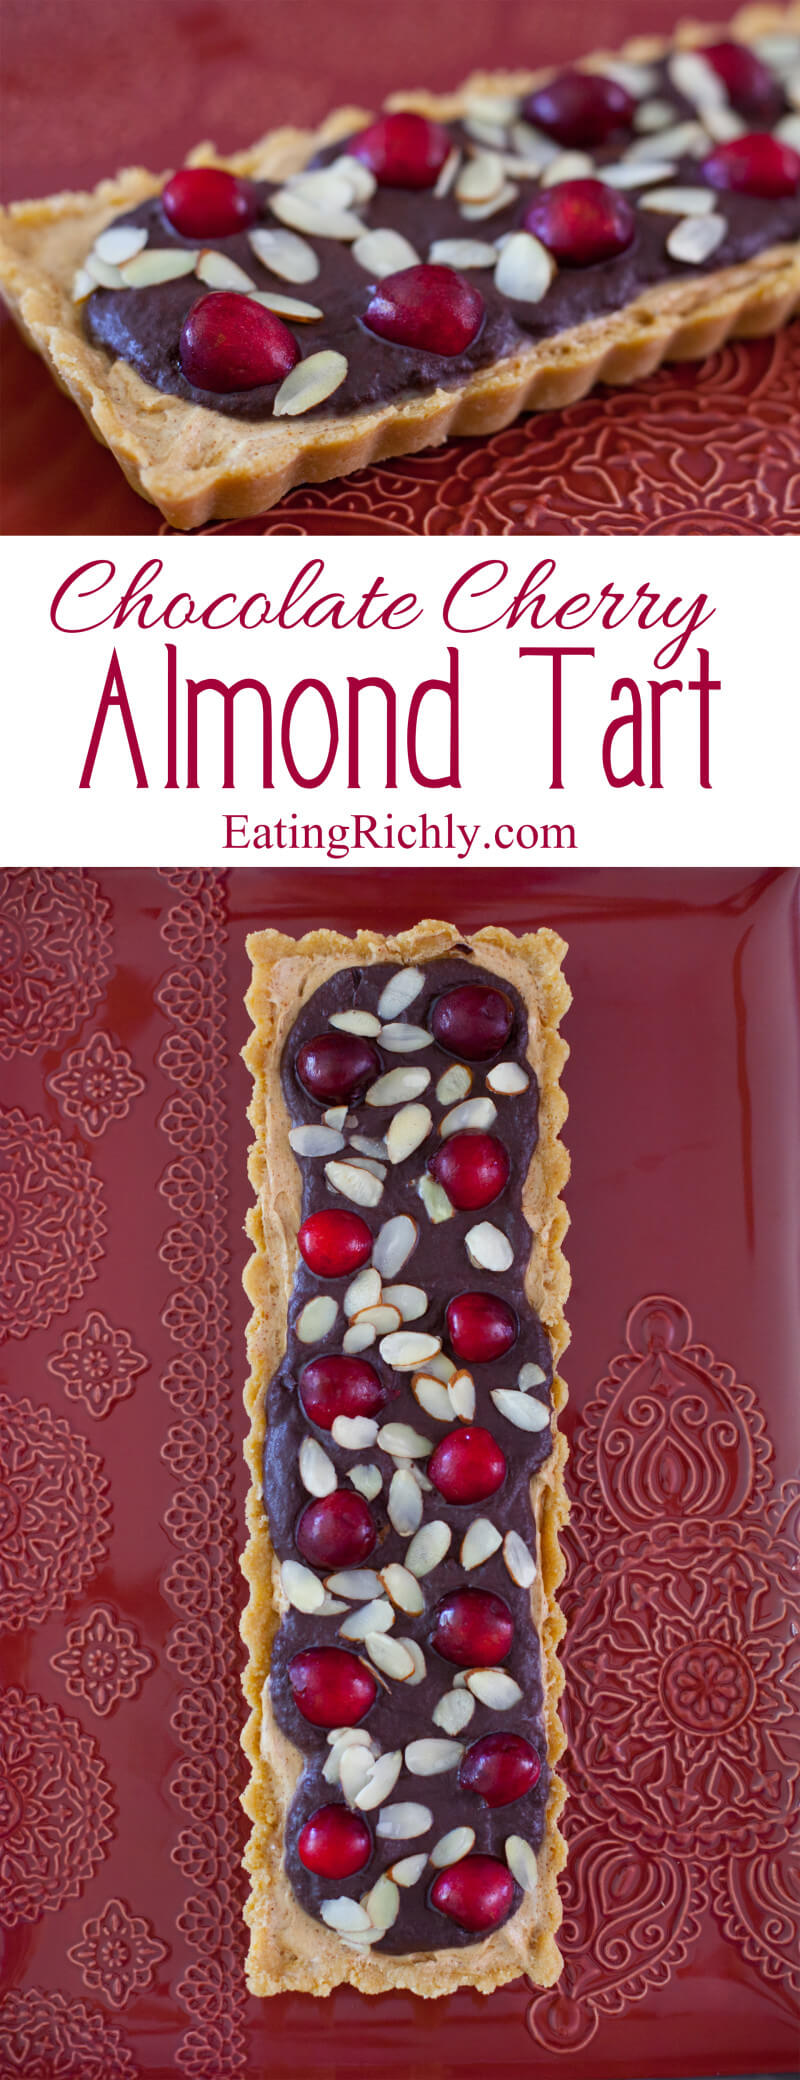 This no bake chocolate cherry almond tart recipe is an easy summer dessert!